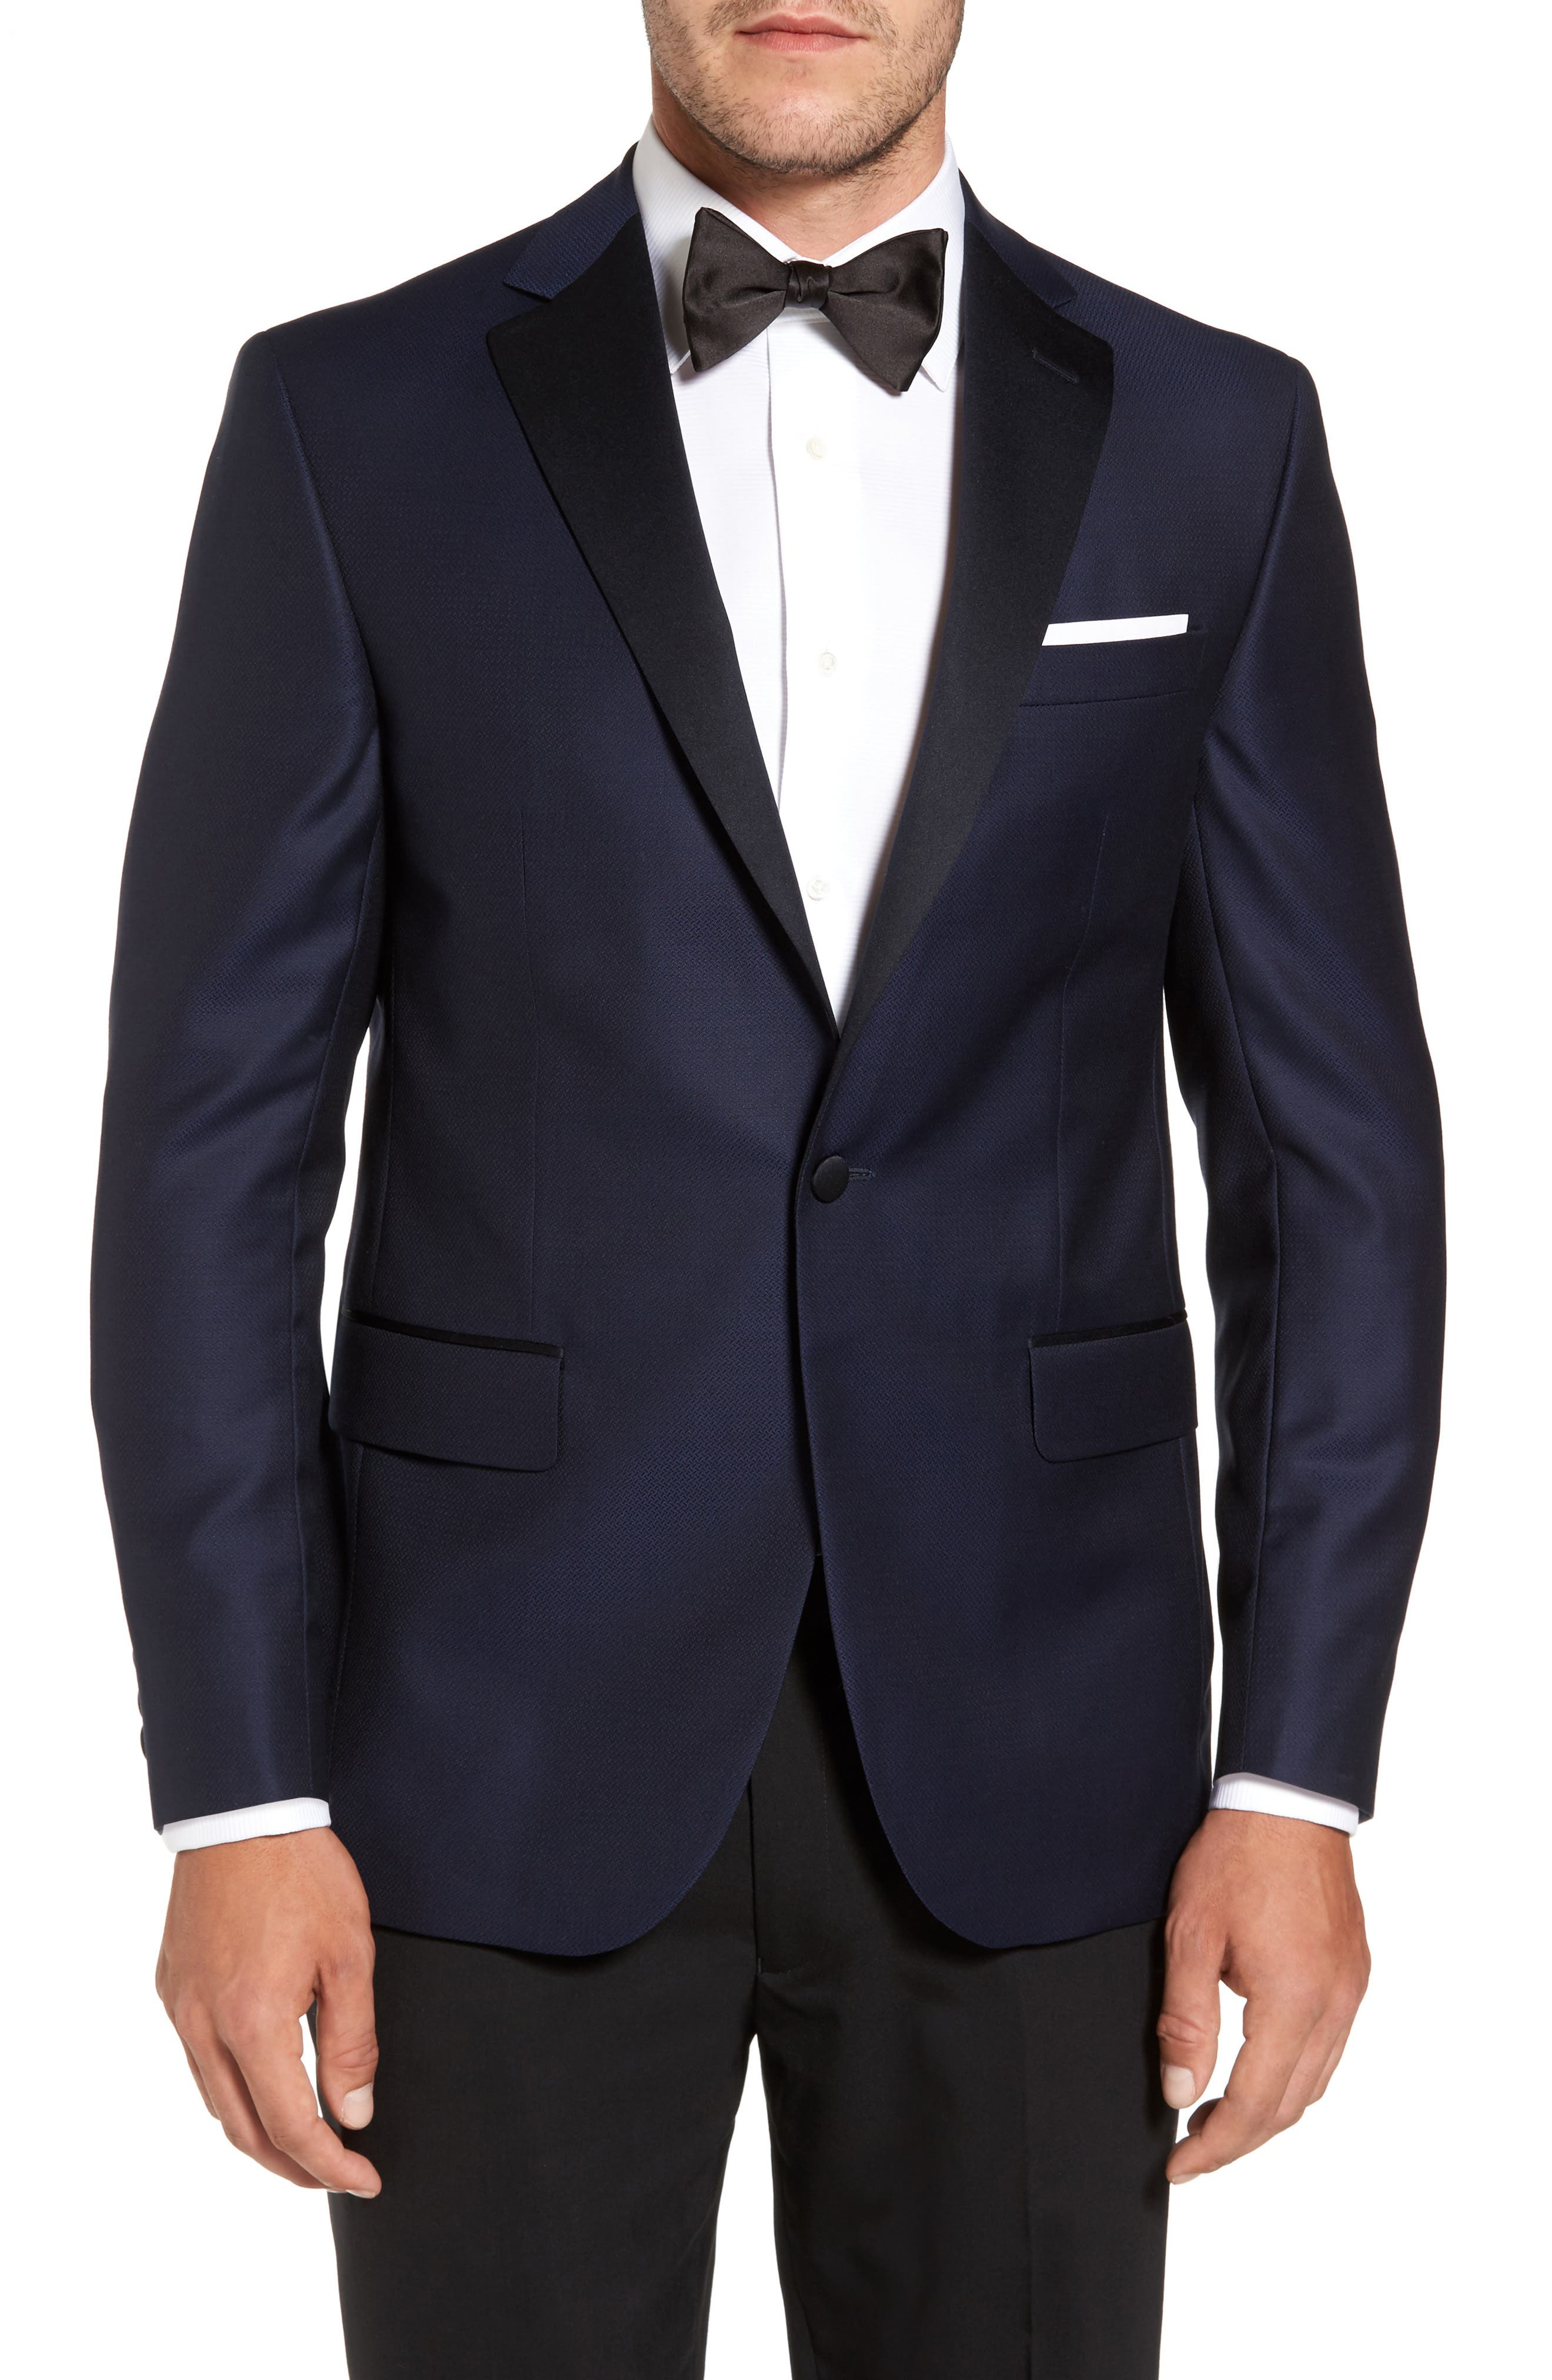 Reed Classic Fit Dinner Jacket,                         Main,                         color, 001